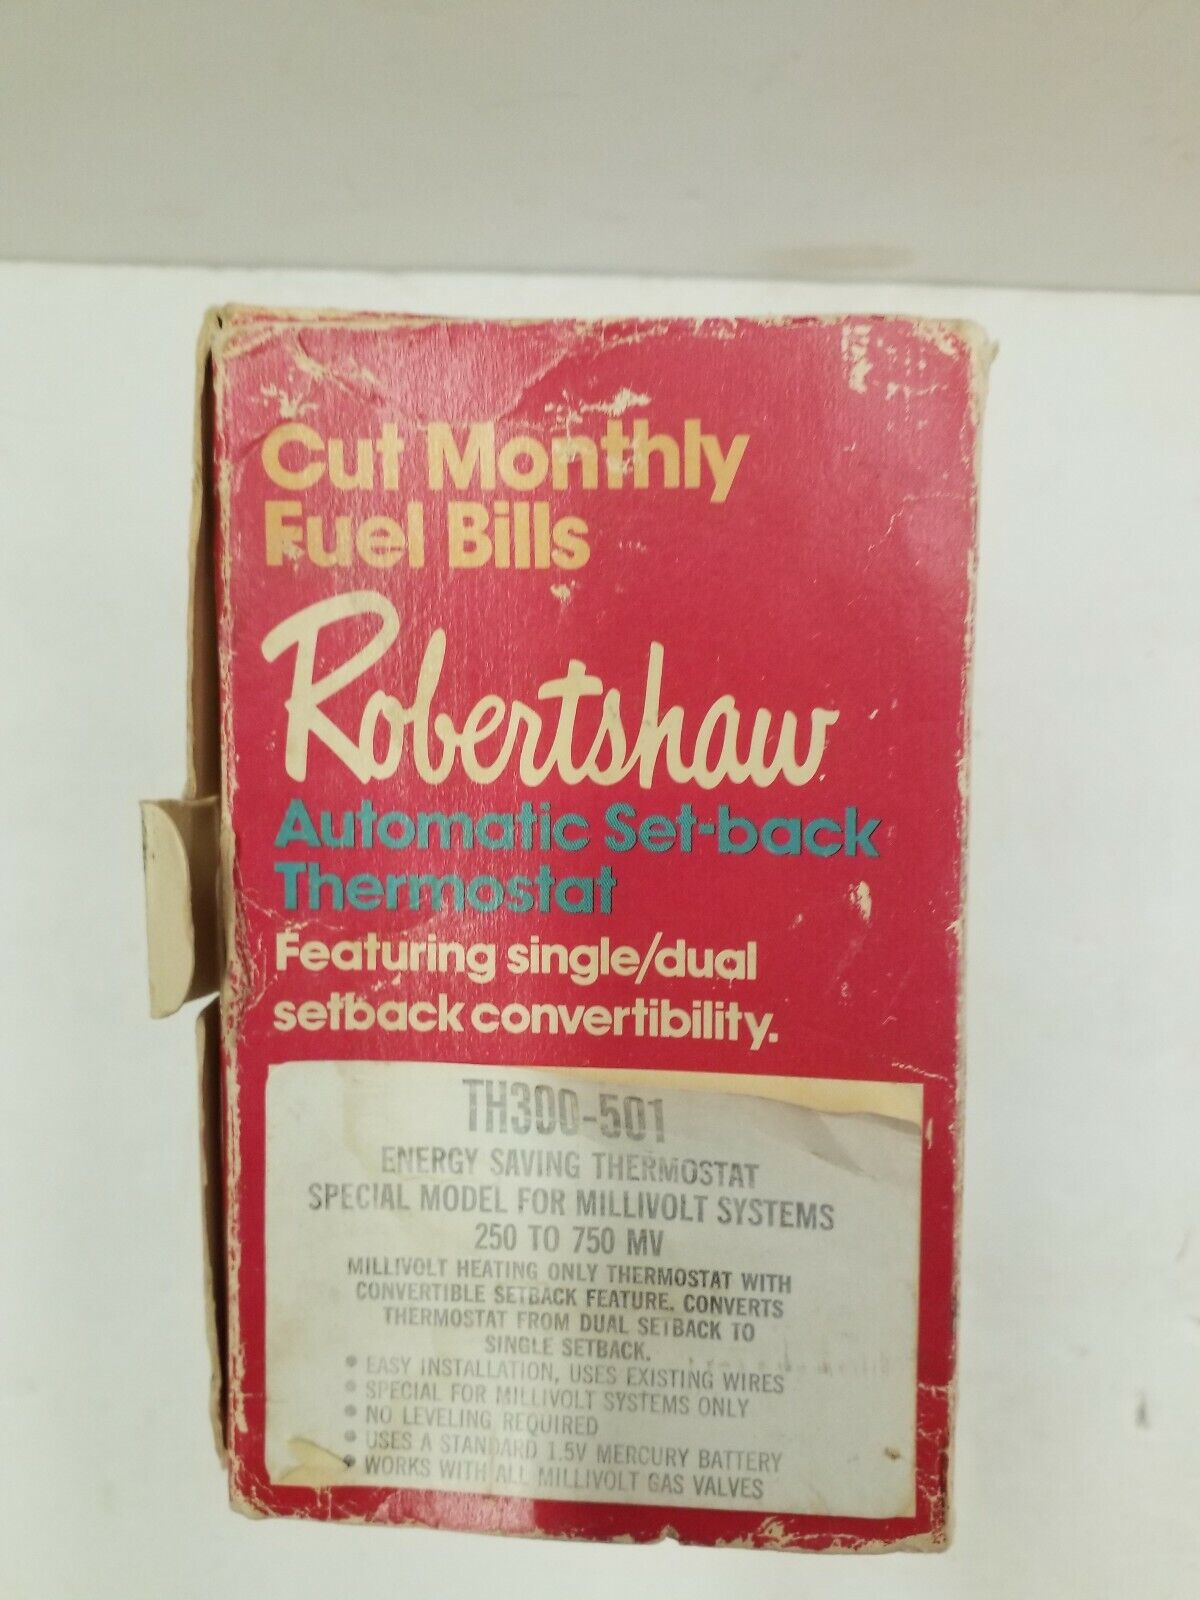 Robertshaw Automatic Set Back Thermostat TH 300-501 Vintage 1973 on